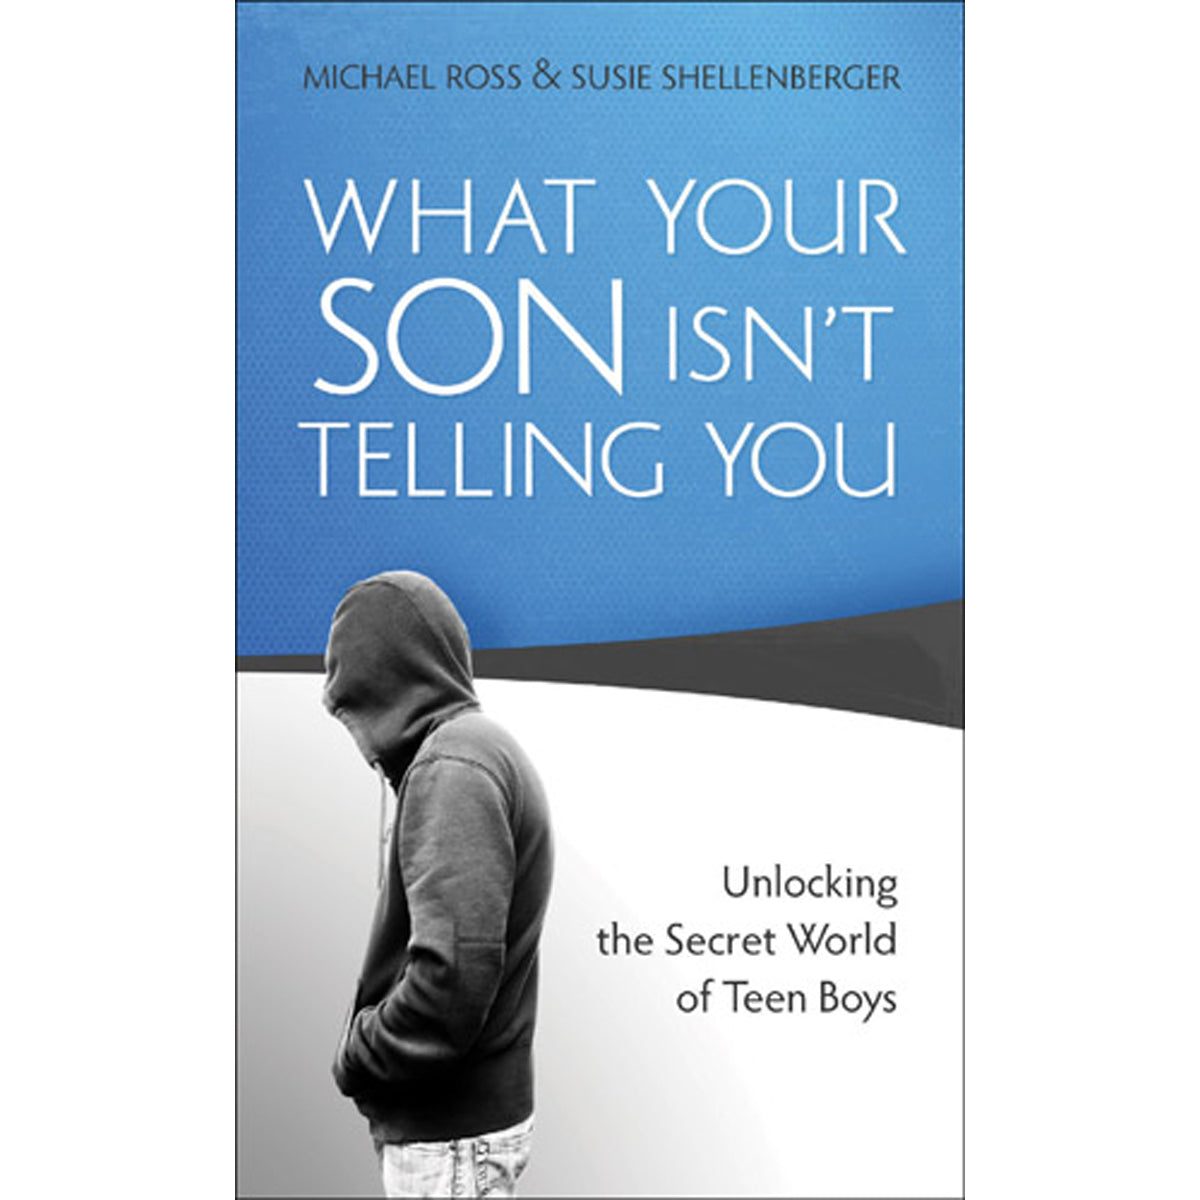 What Your Son Isnt Telling You (Mass Market Paperback)